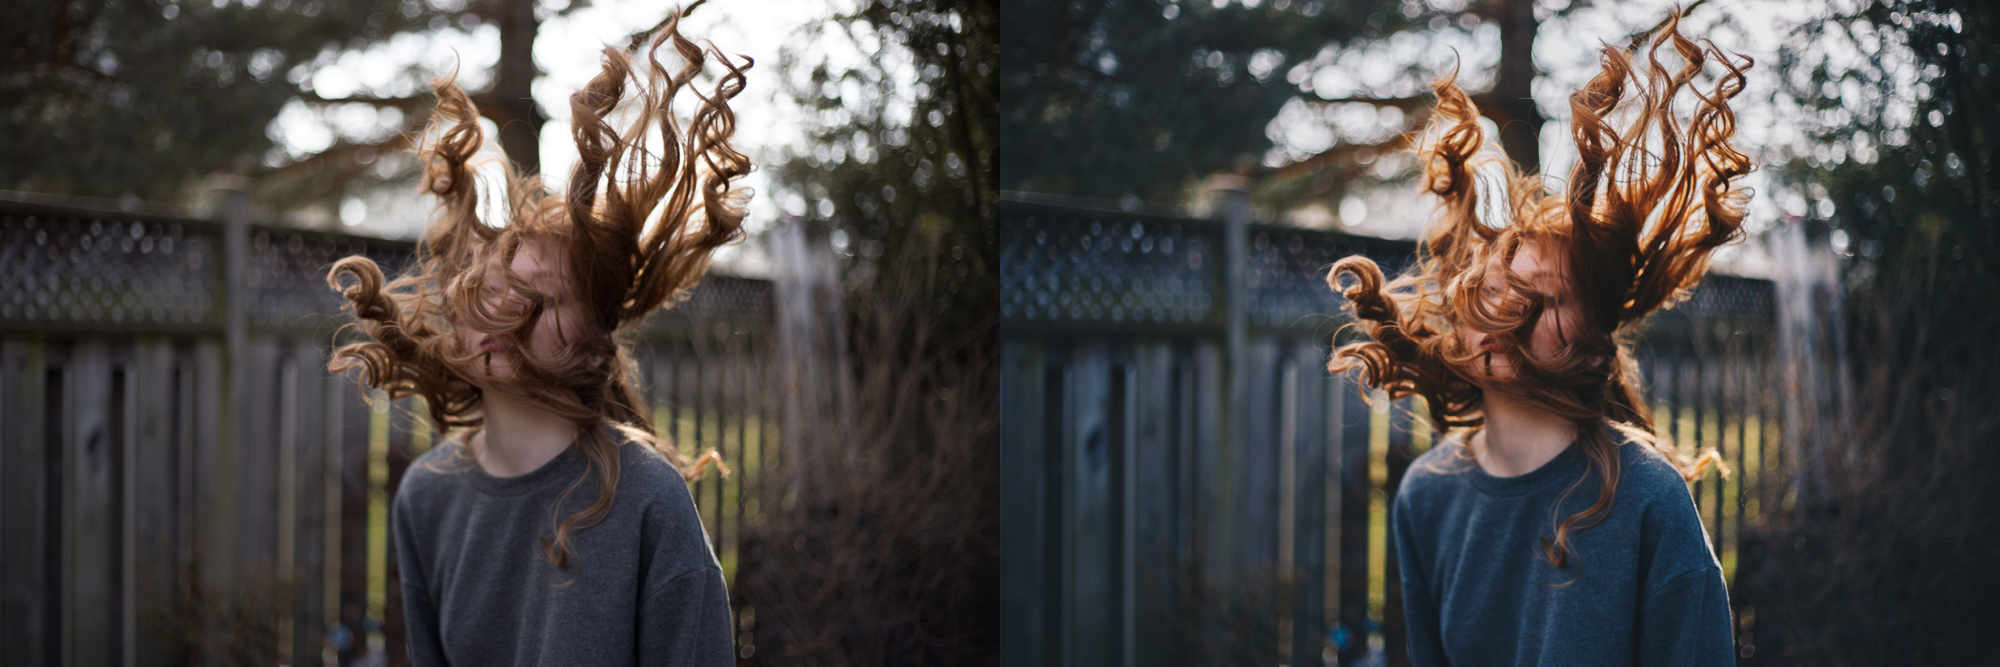 Free Lightroom Presets for Photographers